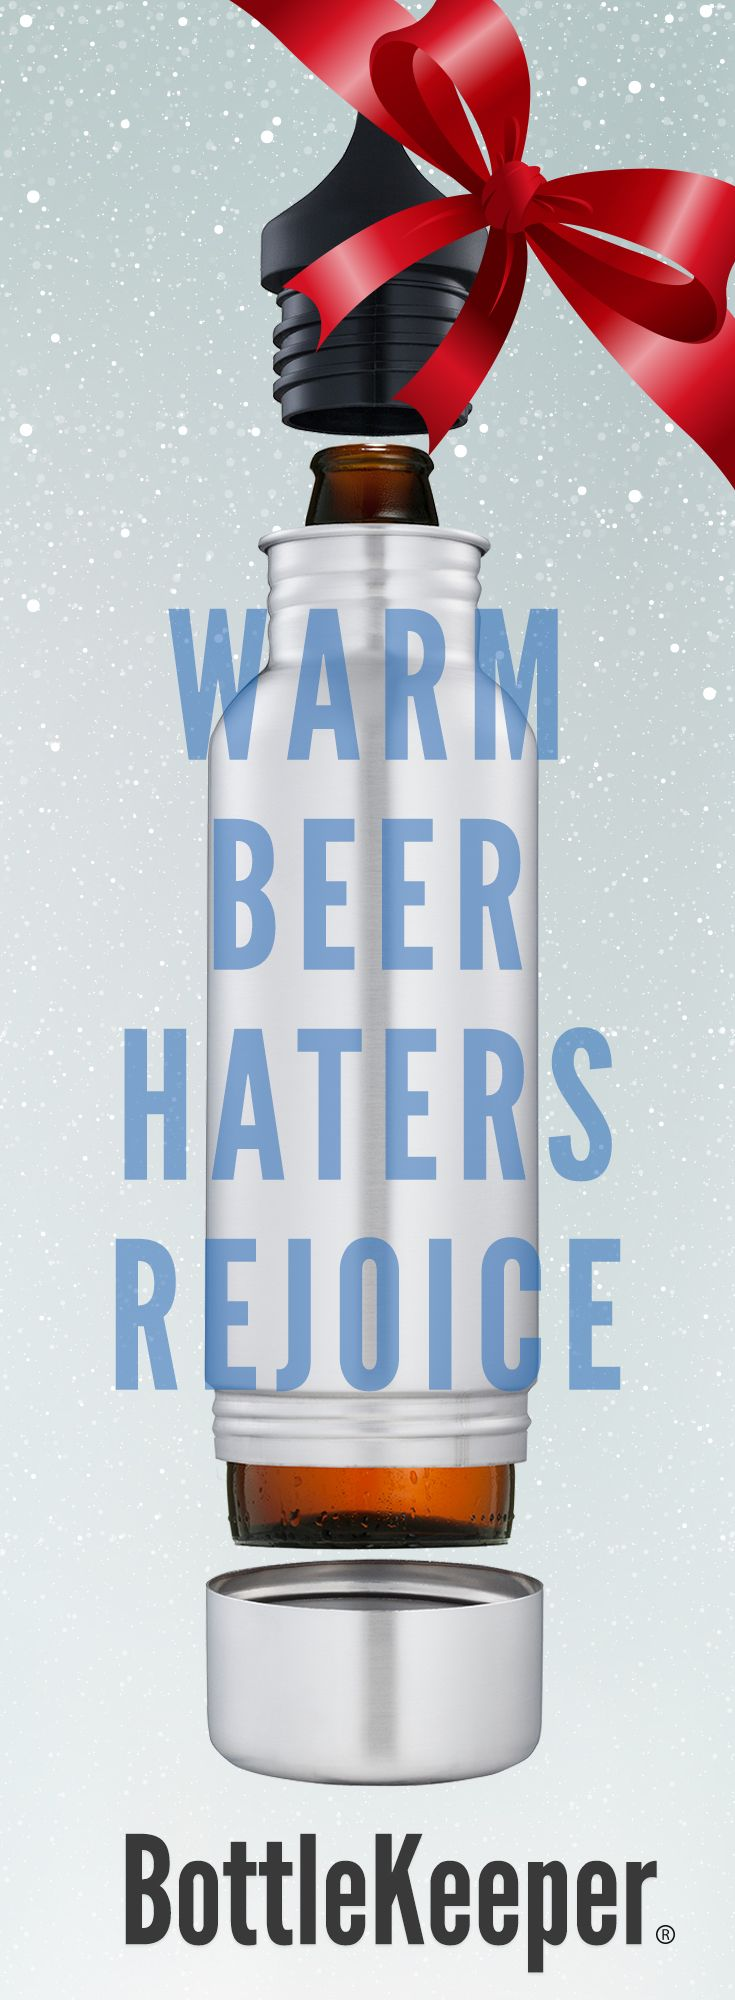 Lined with neoprene and padded for serious impact, BottleKeeper does what a regular koozie can't: it keeps your beer cold and safe, wherever you go. Protect your beer from the elements with BottleKeeper. http://www.bottlekeeper.com/?utm_source=Pinterest&utm_medium=52.4P